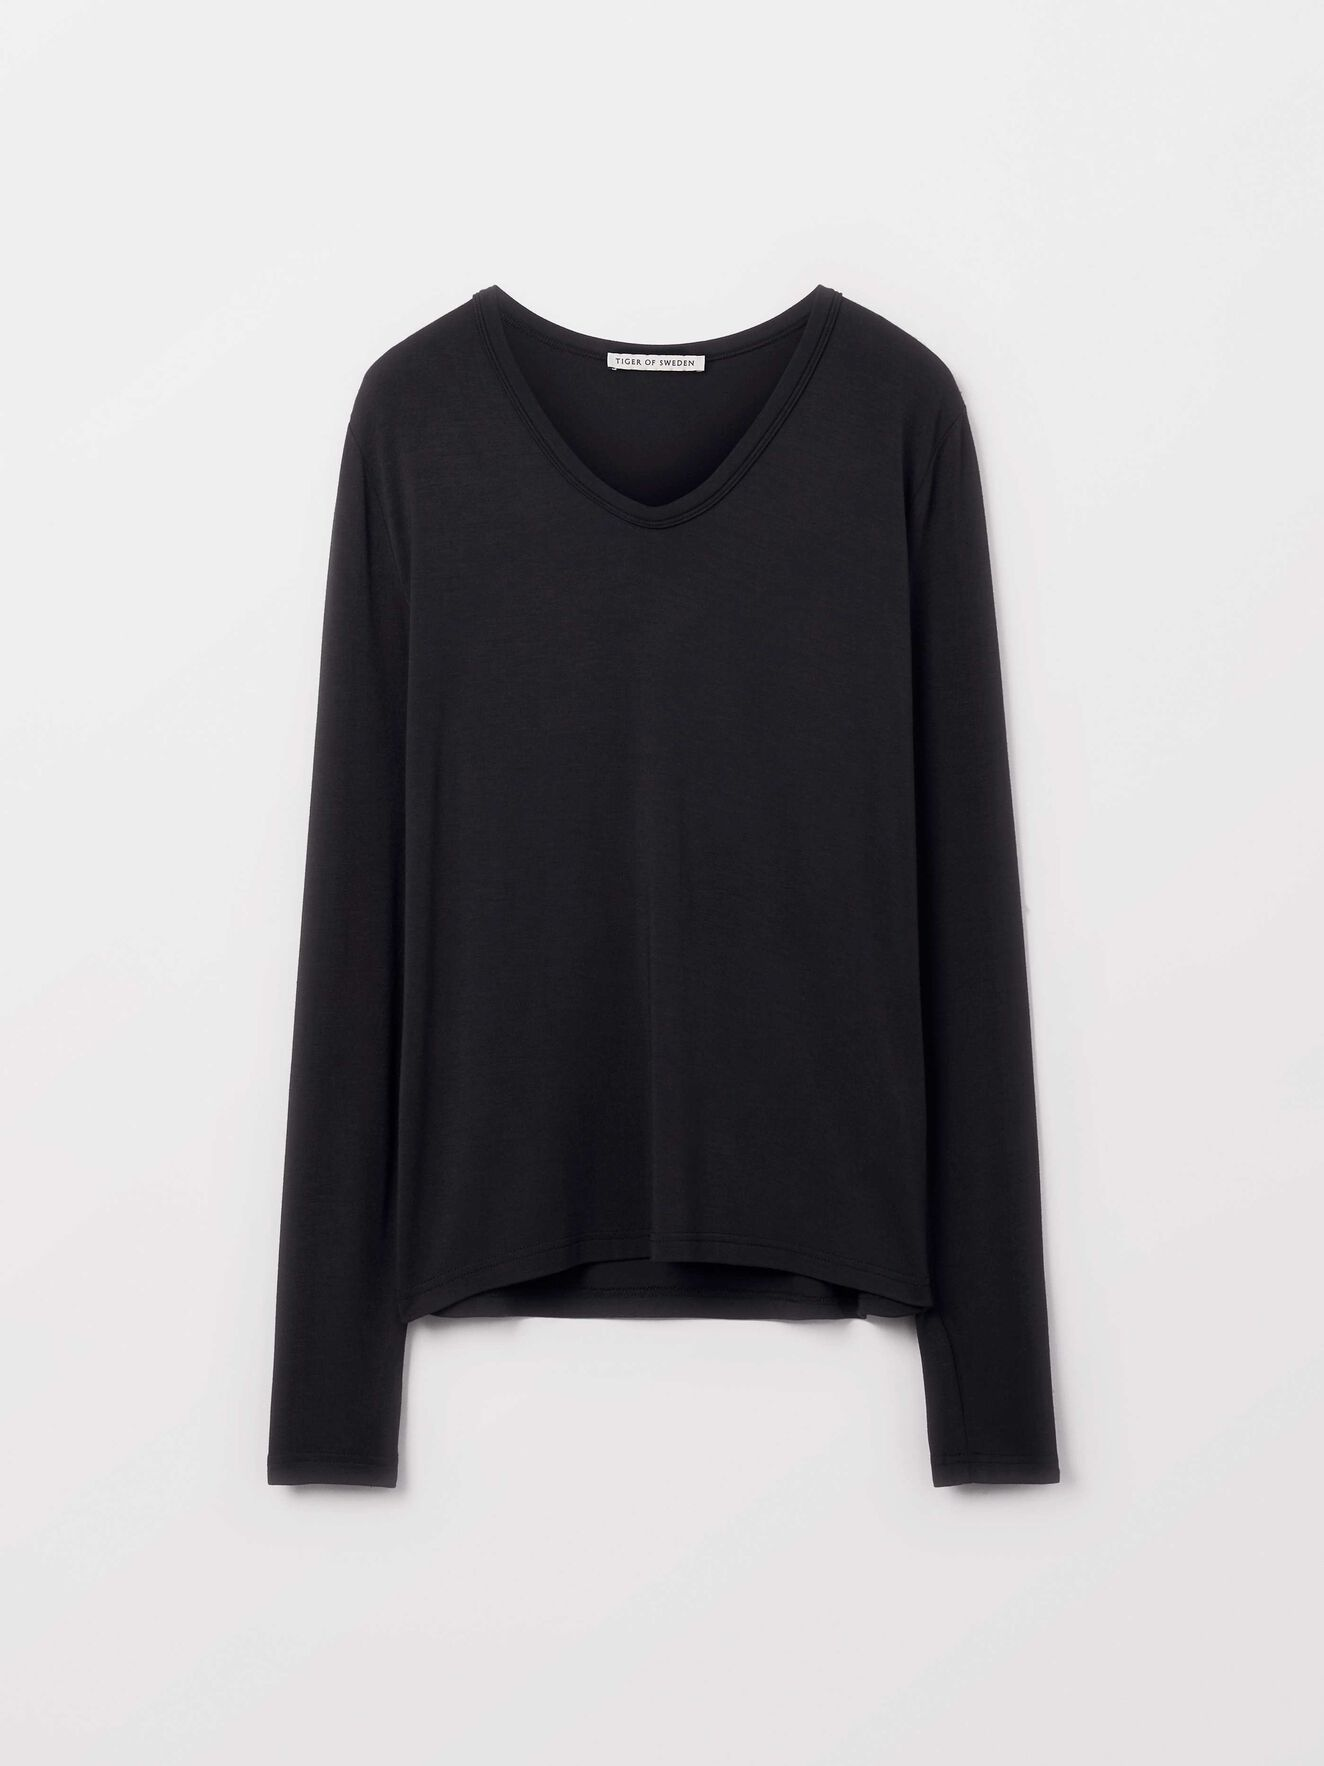 Hapalan T-Shirt in Black from Tiger of Sweden